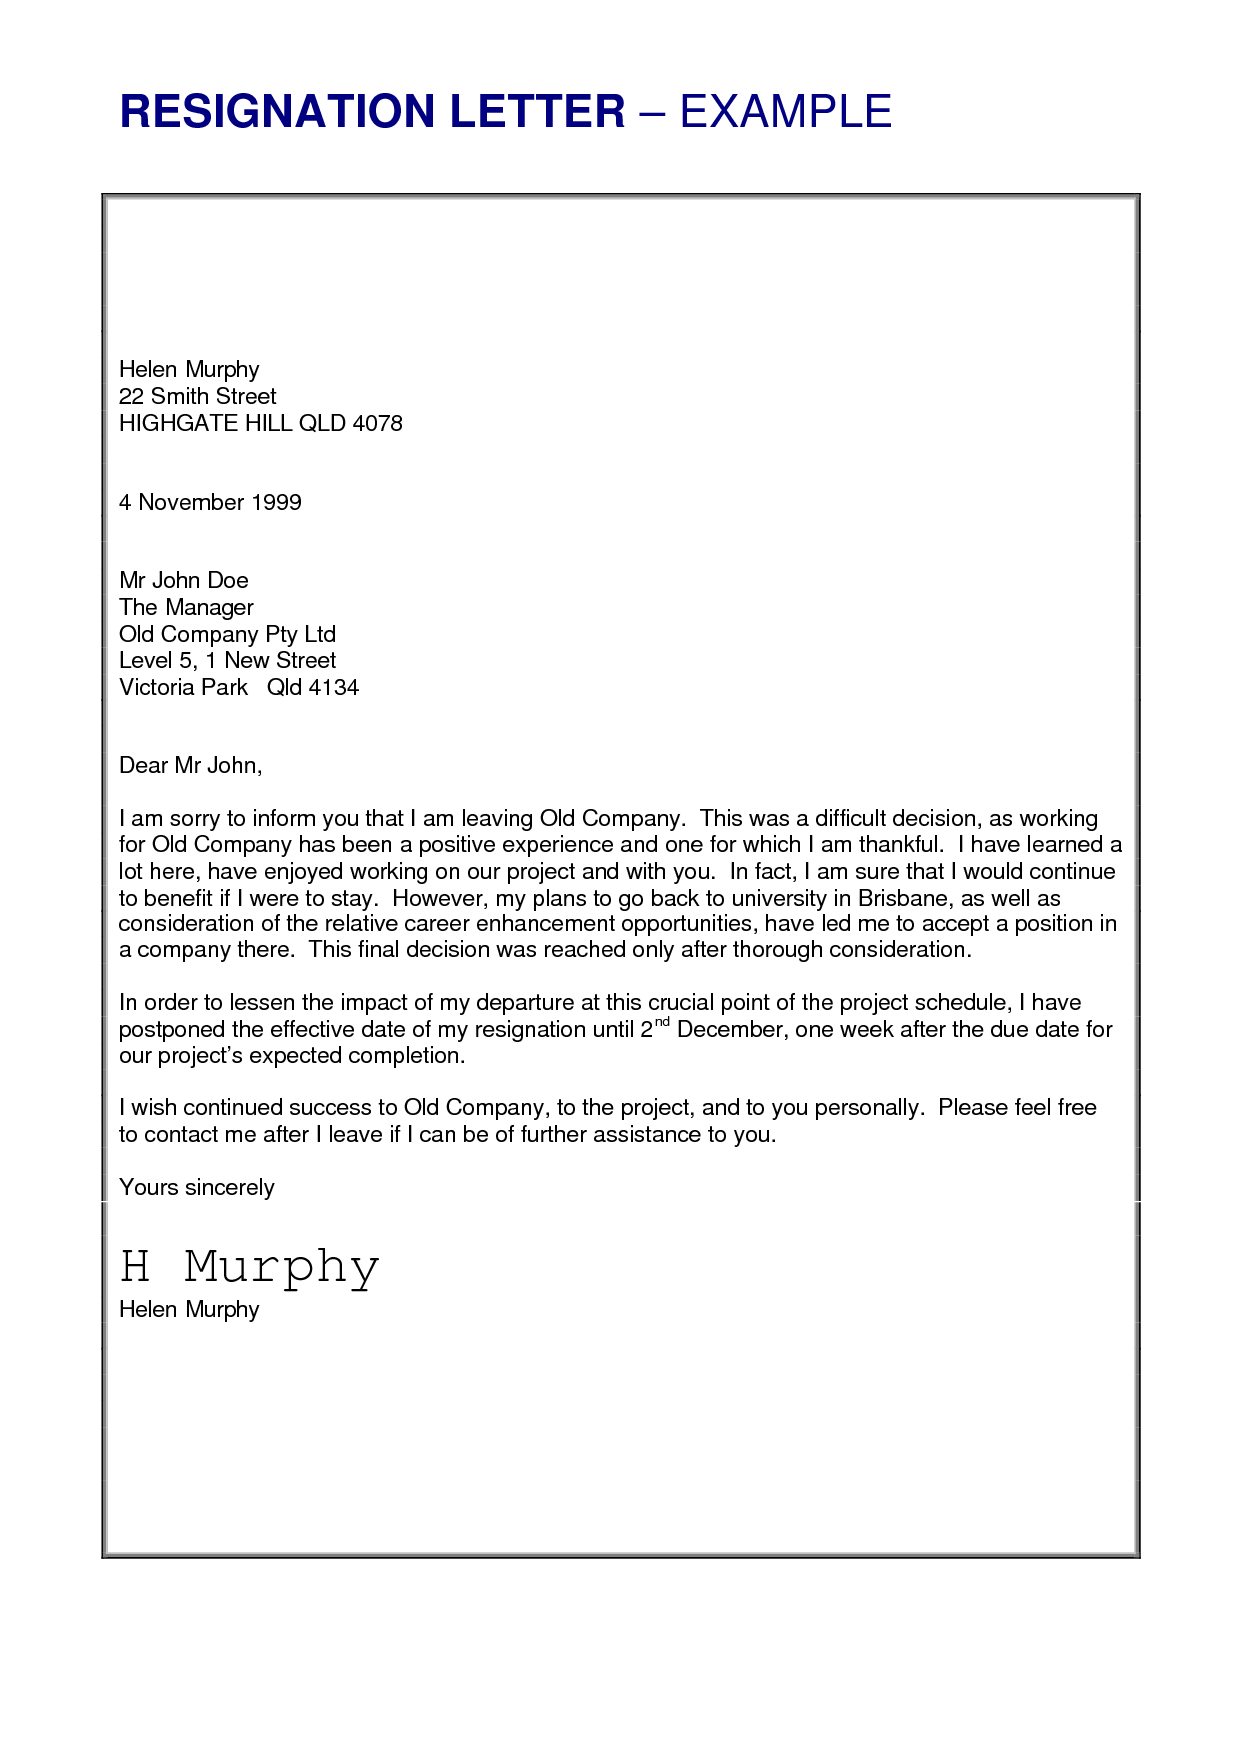 Job resignation letter sample loganun blog best letter job resignation letter sample loganun blog spiritdancerdesigns Gallery